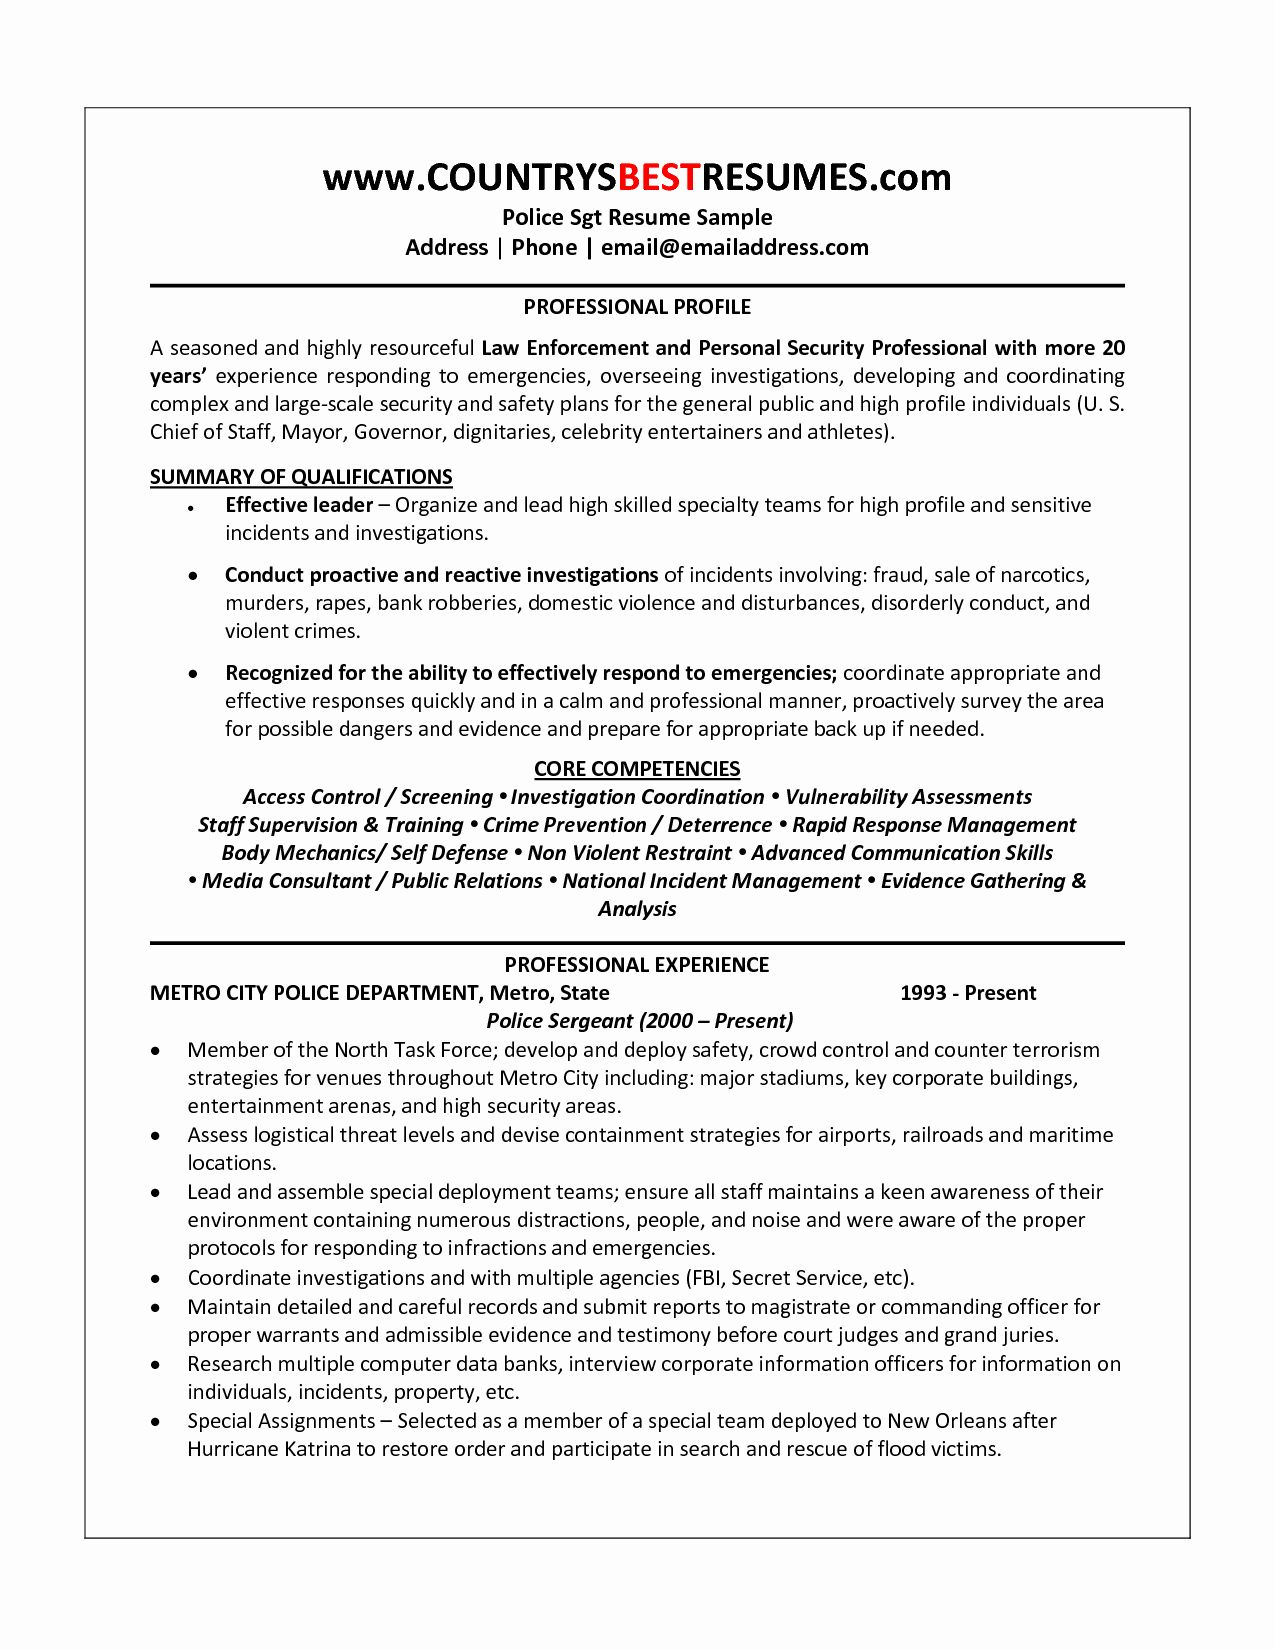 Police Officer Resume Examples New Police Ficer Resume